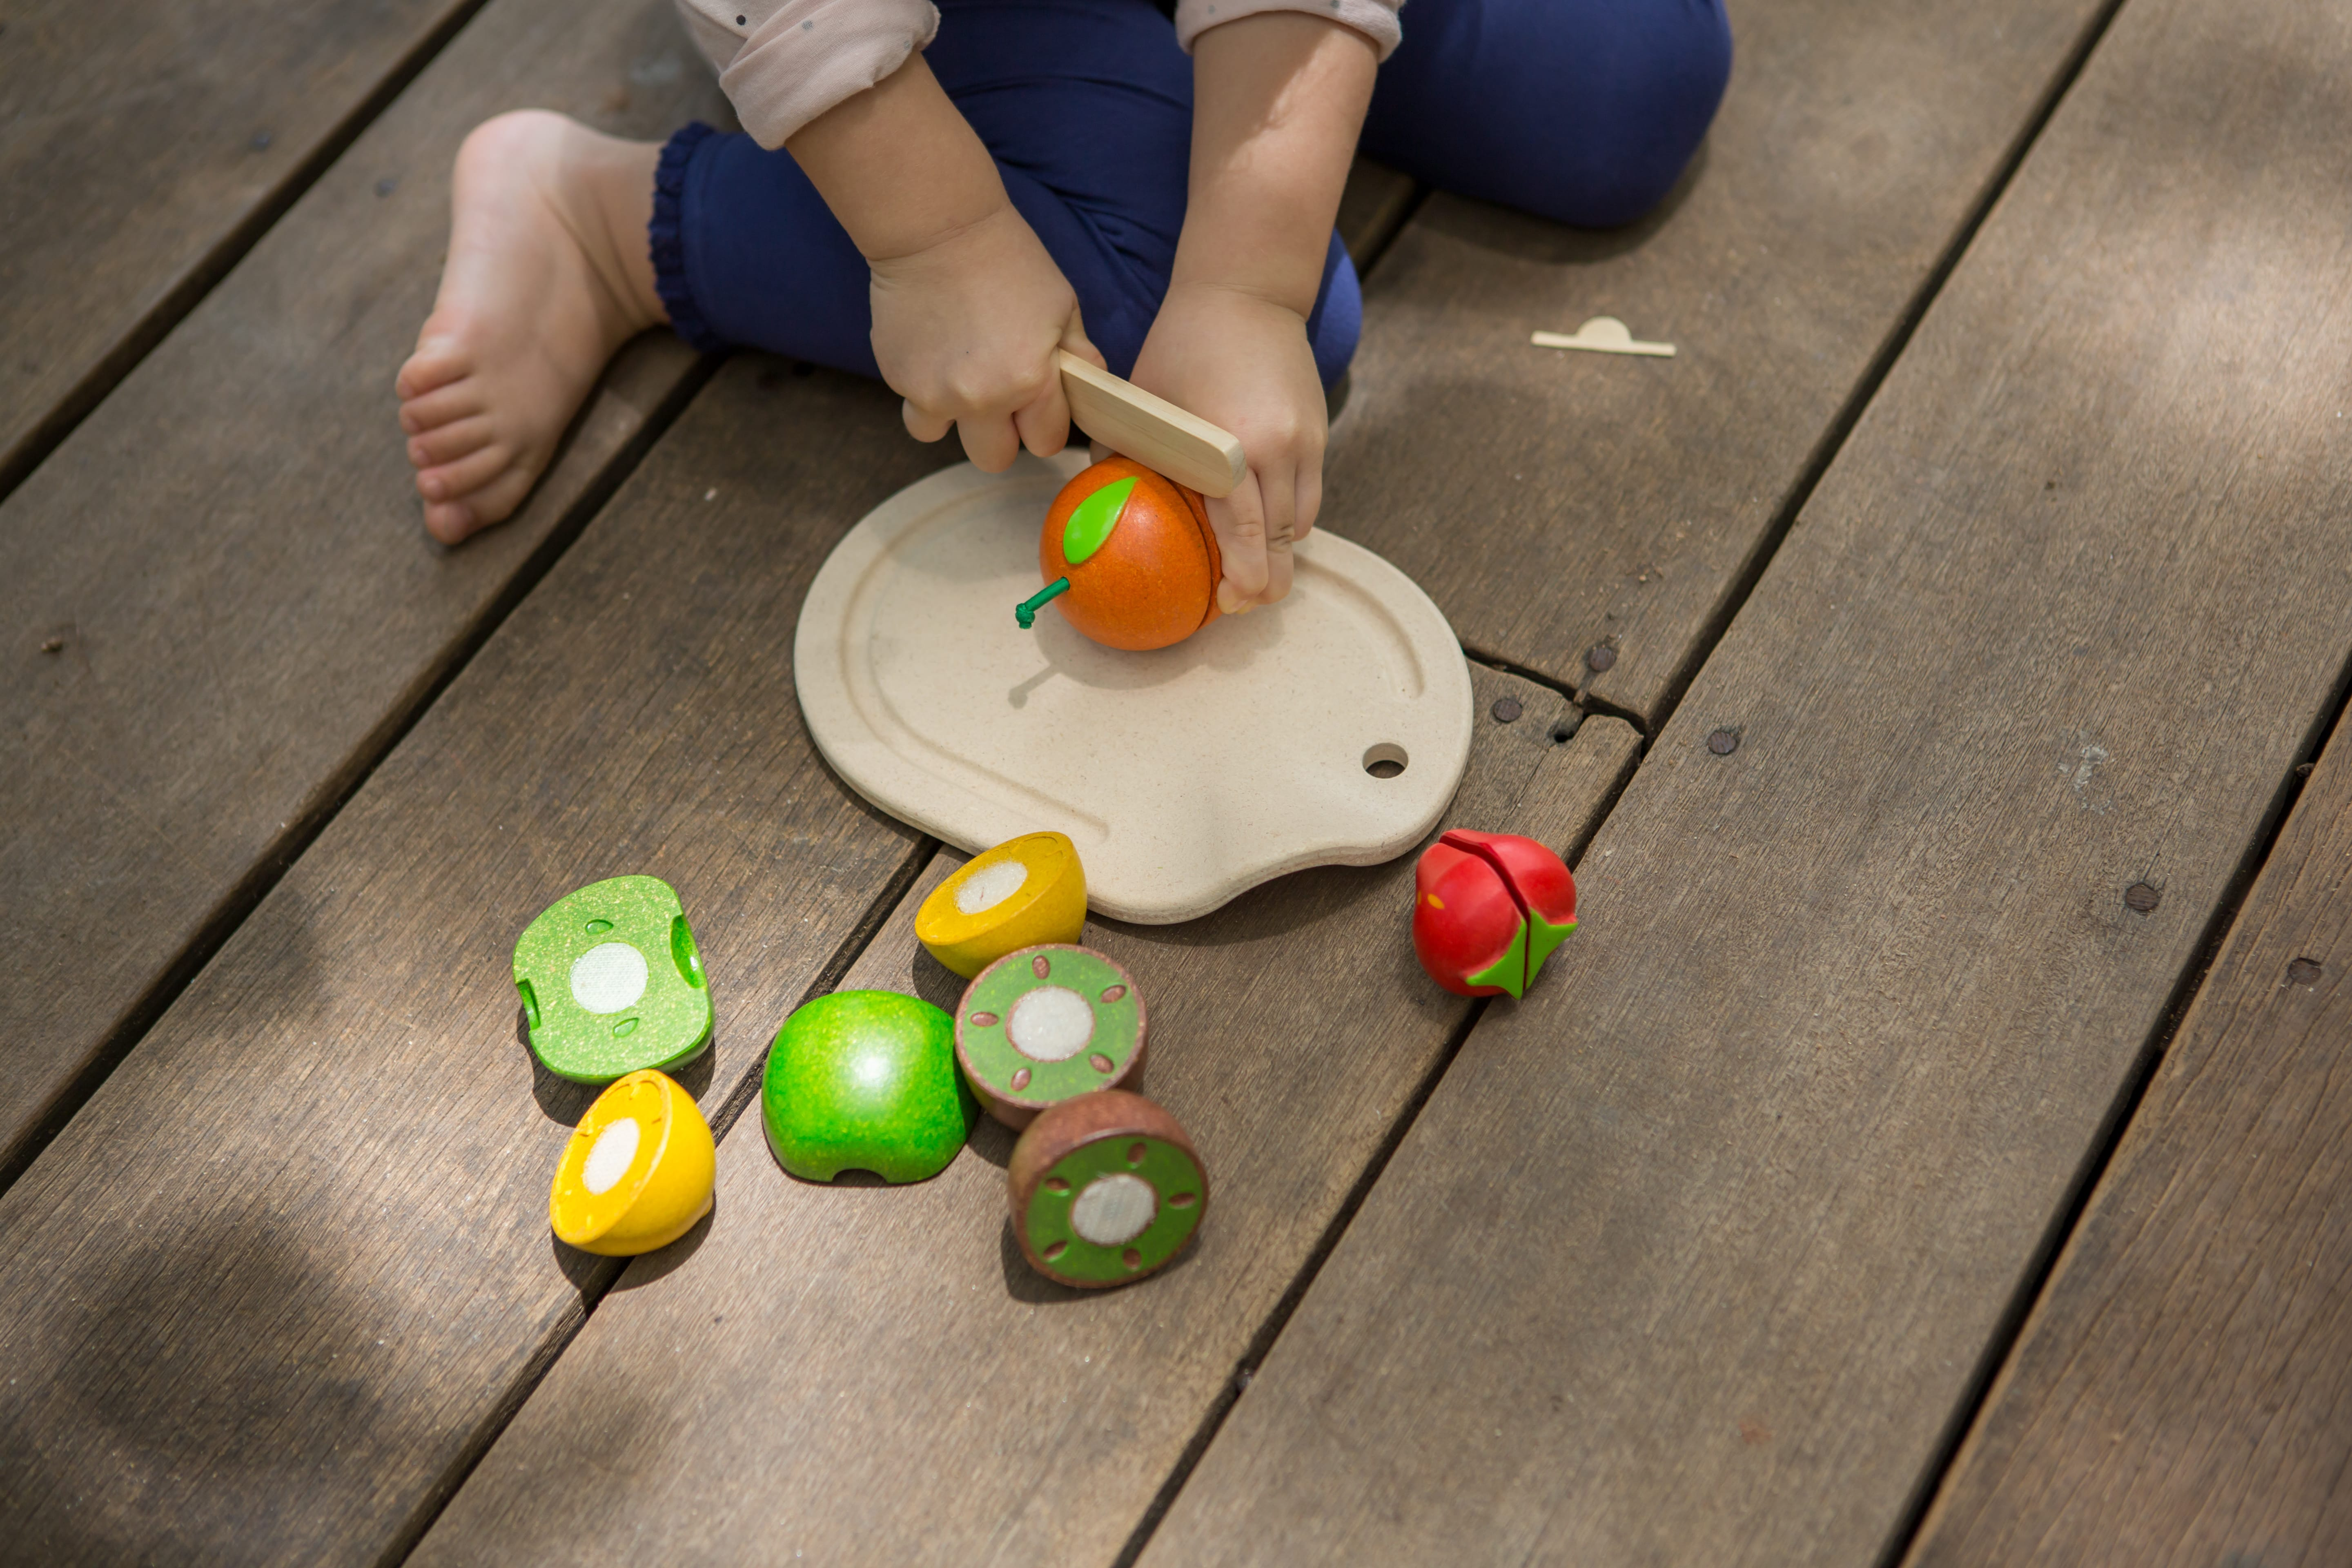 3600_PlanToys_ASSORTED_FRUIT_SET_Pretend_Play_Coordination_Concentration_Imagination_Language_and_Communications_Social_Fine_Motor_18m_Wooden_toys_Education_toys_Safety_Toys_Non-toxic_1.jpg